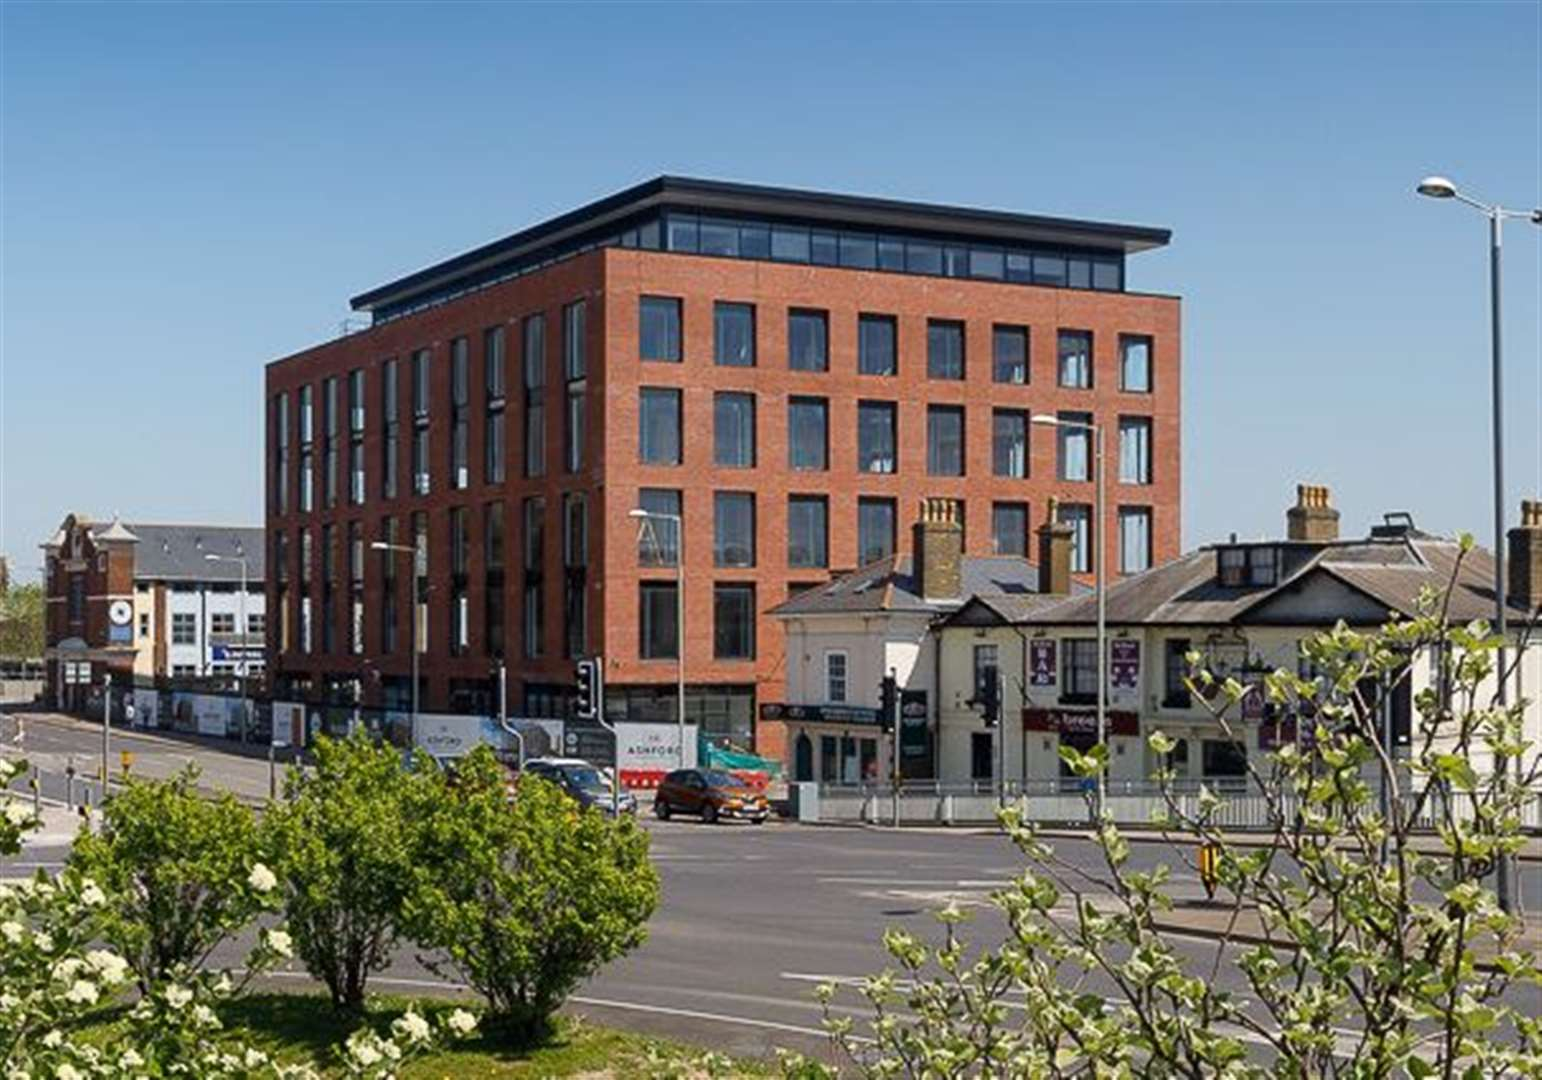 Council to buy £17m office block